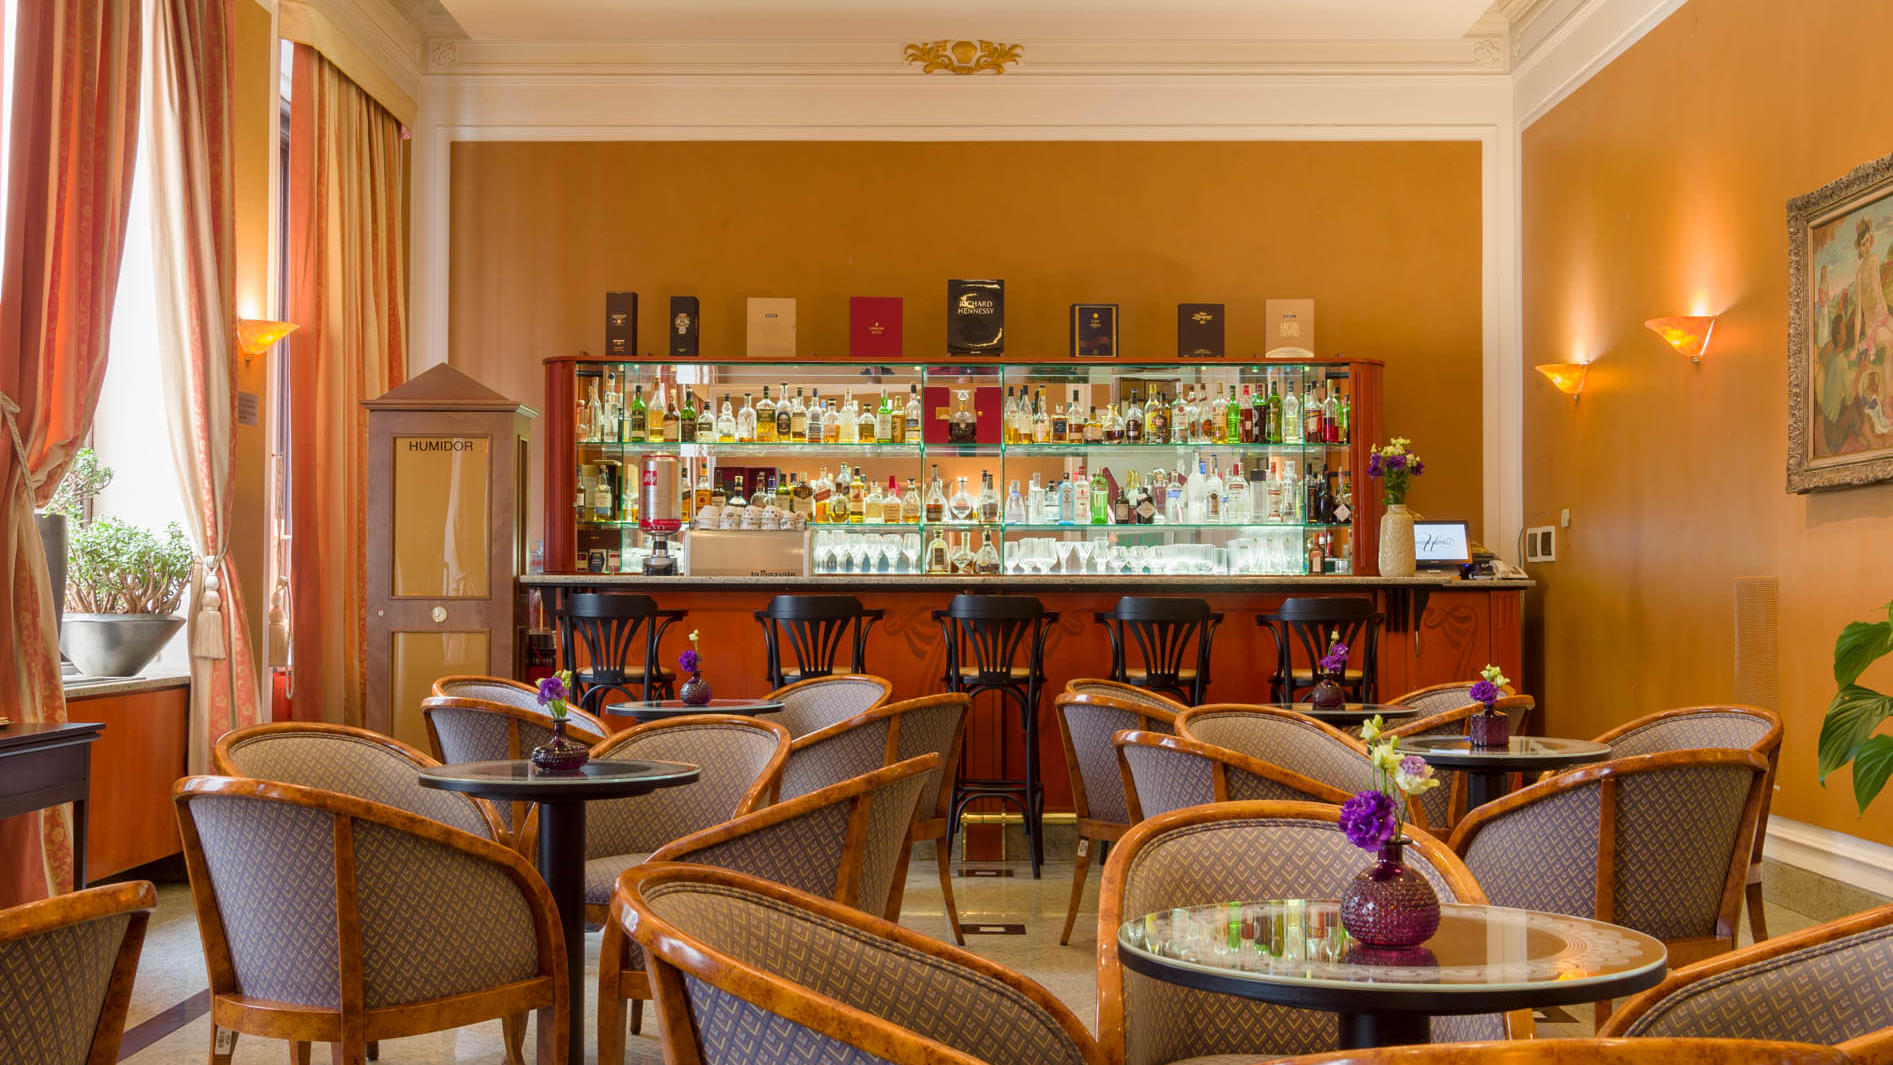 Lobby bar at Grand Hotel Union in Ljubljana